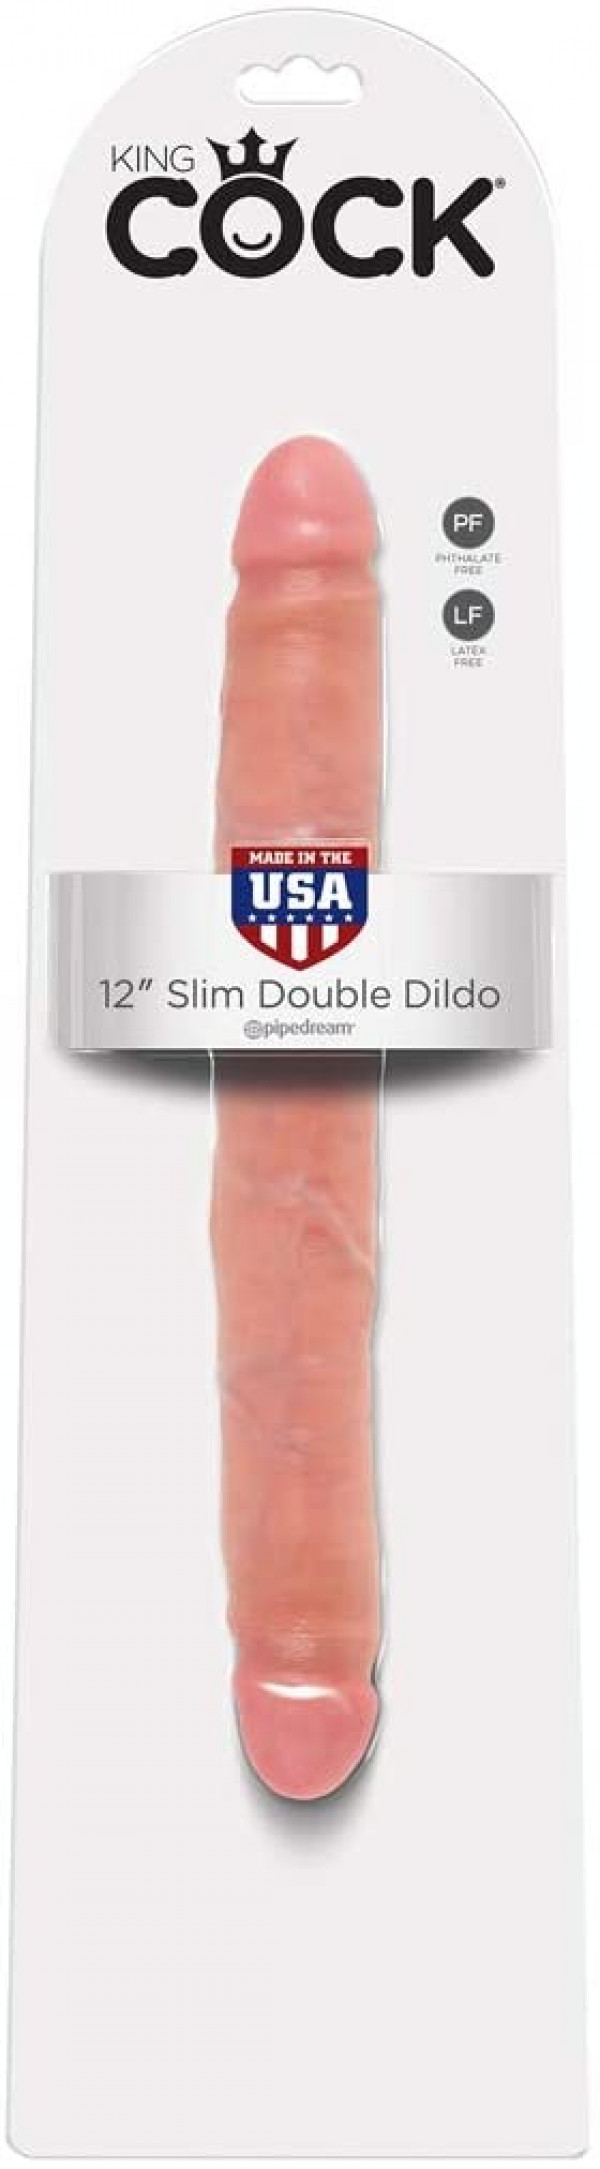 "12"" Slim Double Dildo"